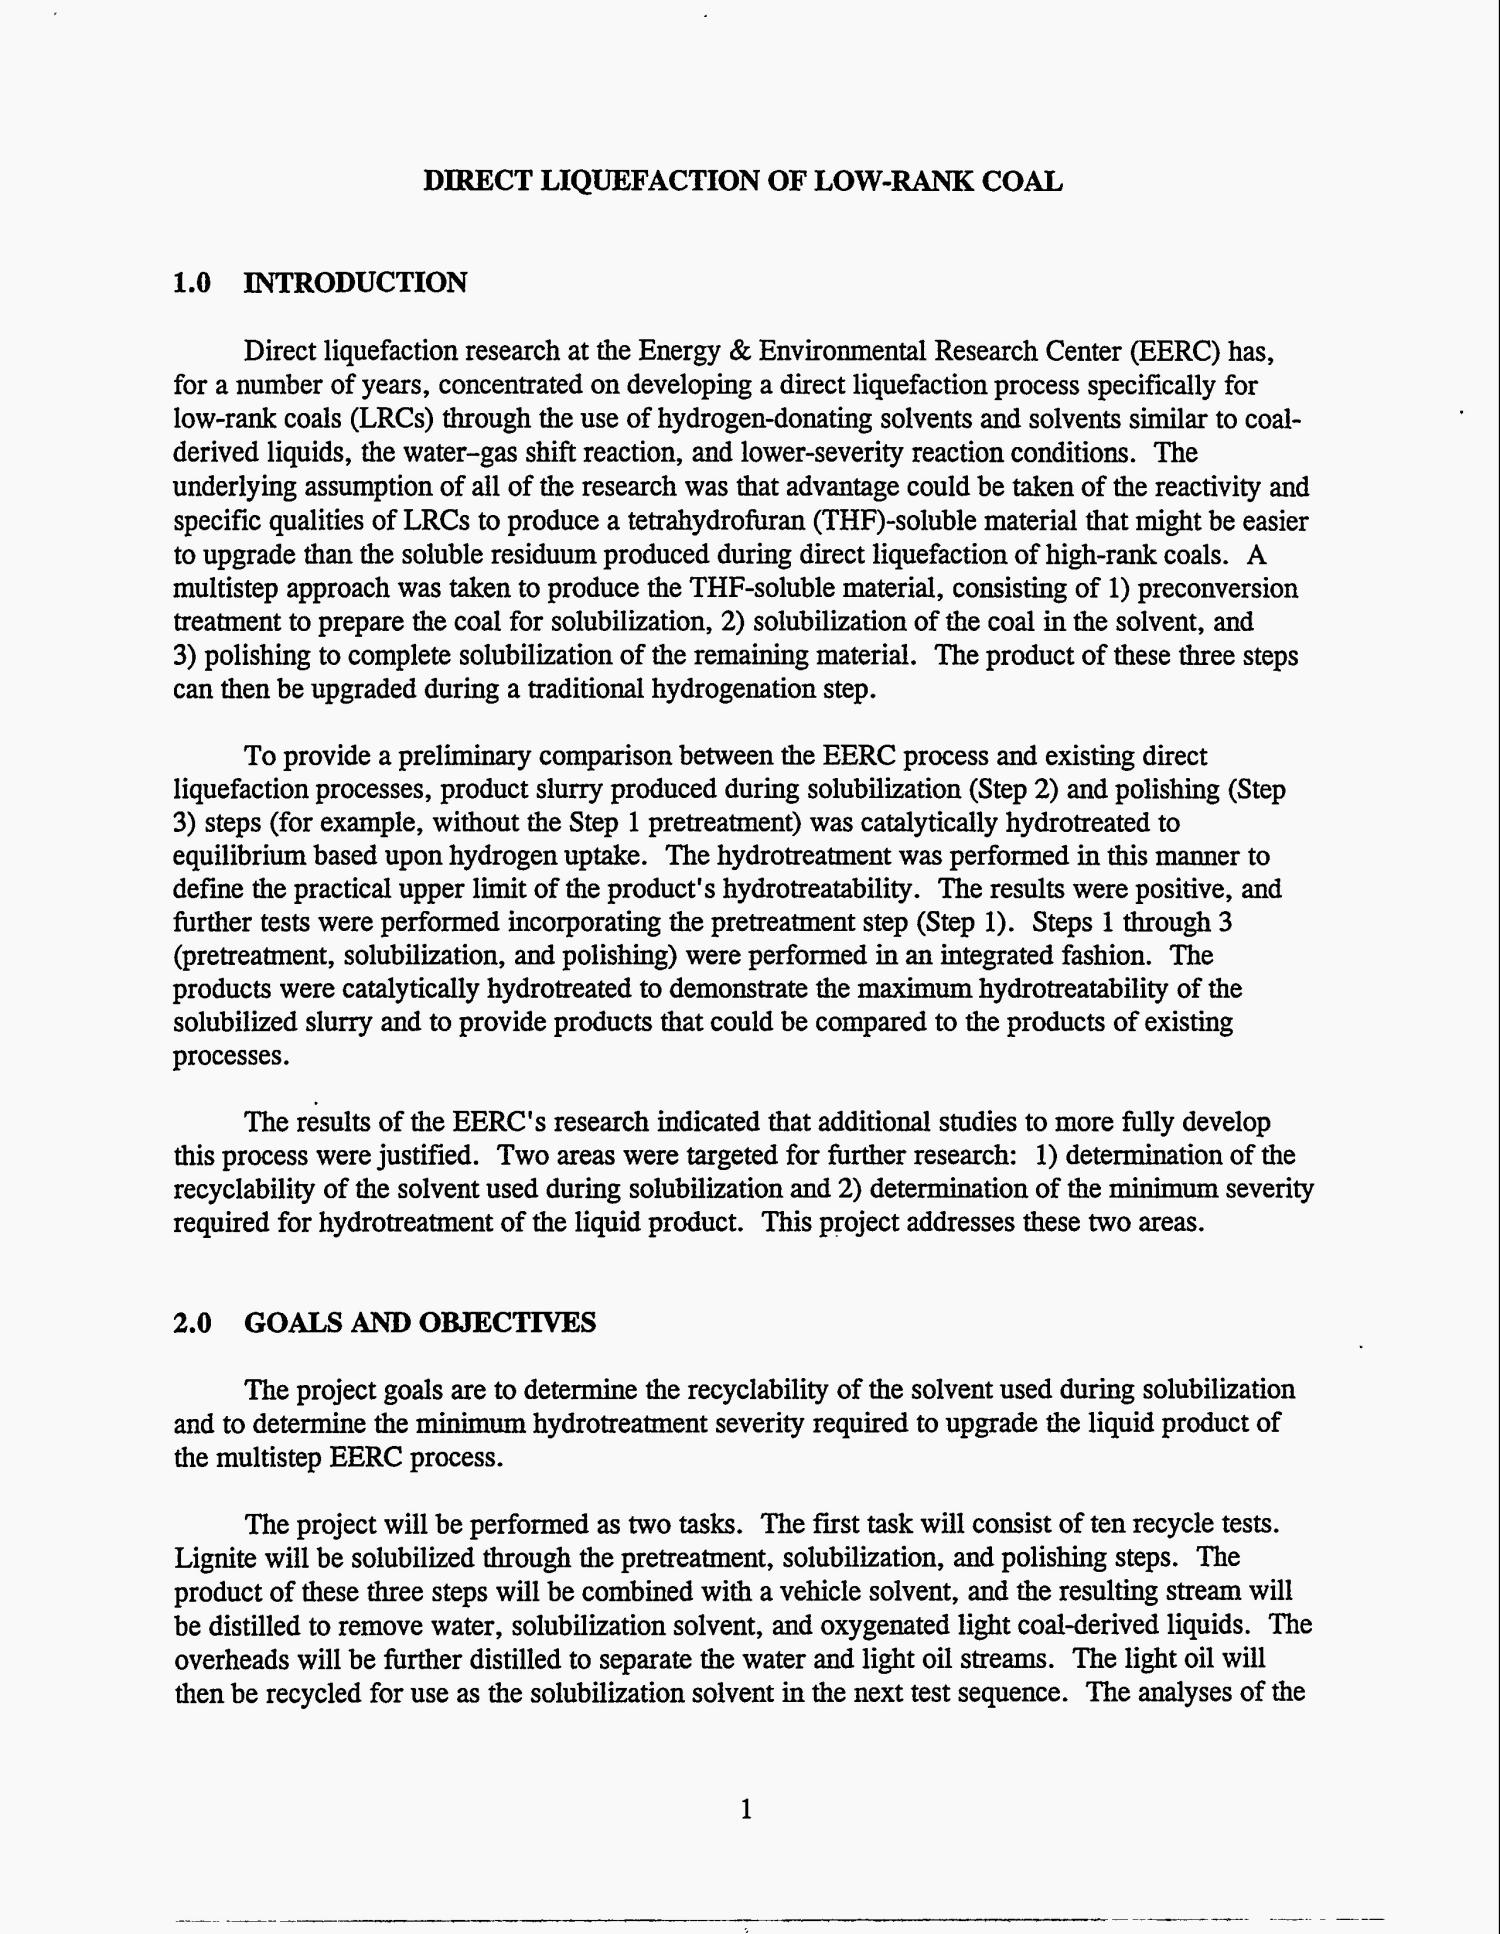 Direct liquefaction of low-rank coal. Quarterly technical progress report, April 1, 1995--June 30, 1995                                                                                                      [Sequence #]: 4 of 13